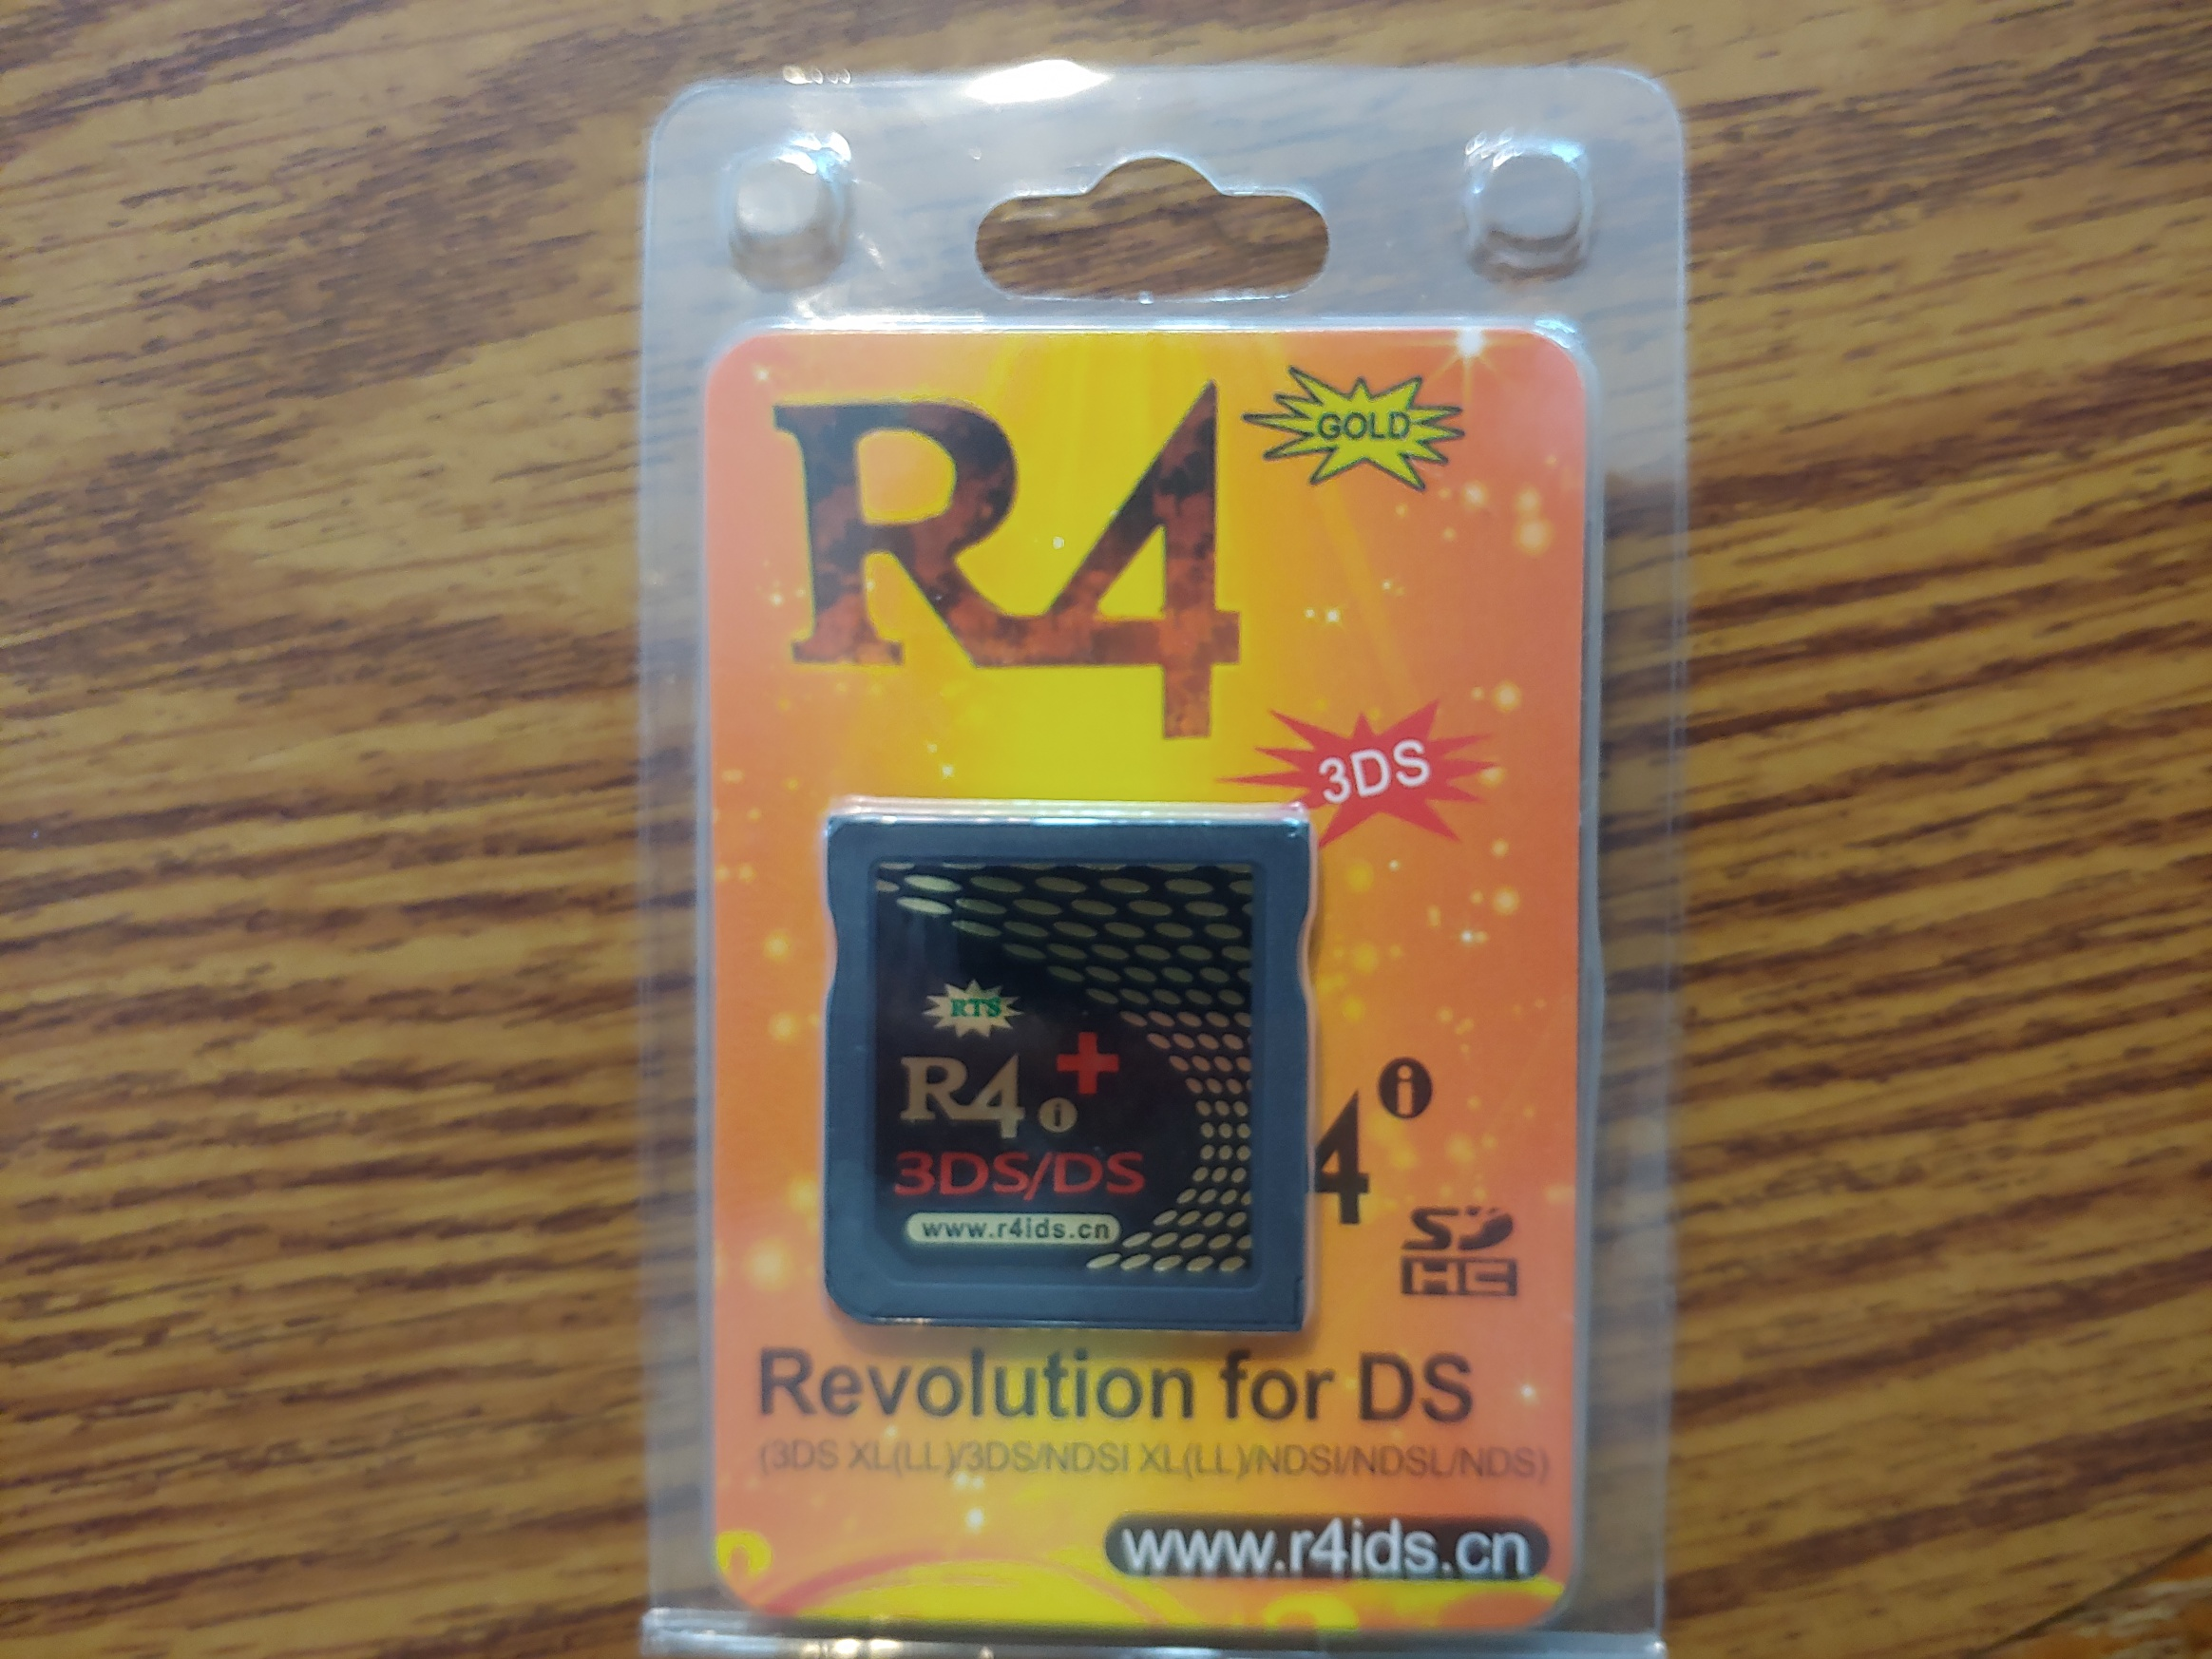 R4i Gold 3DS Plus Flashcart